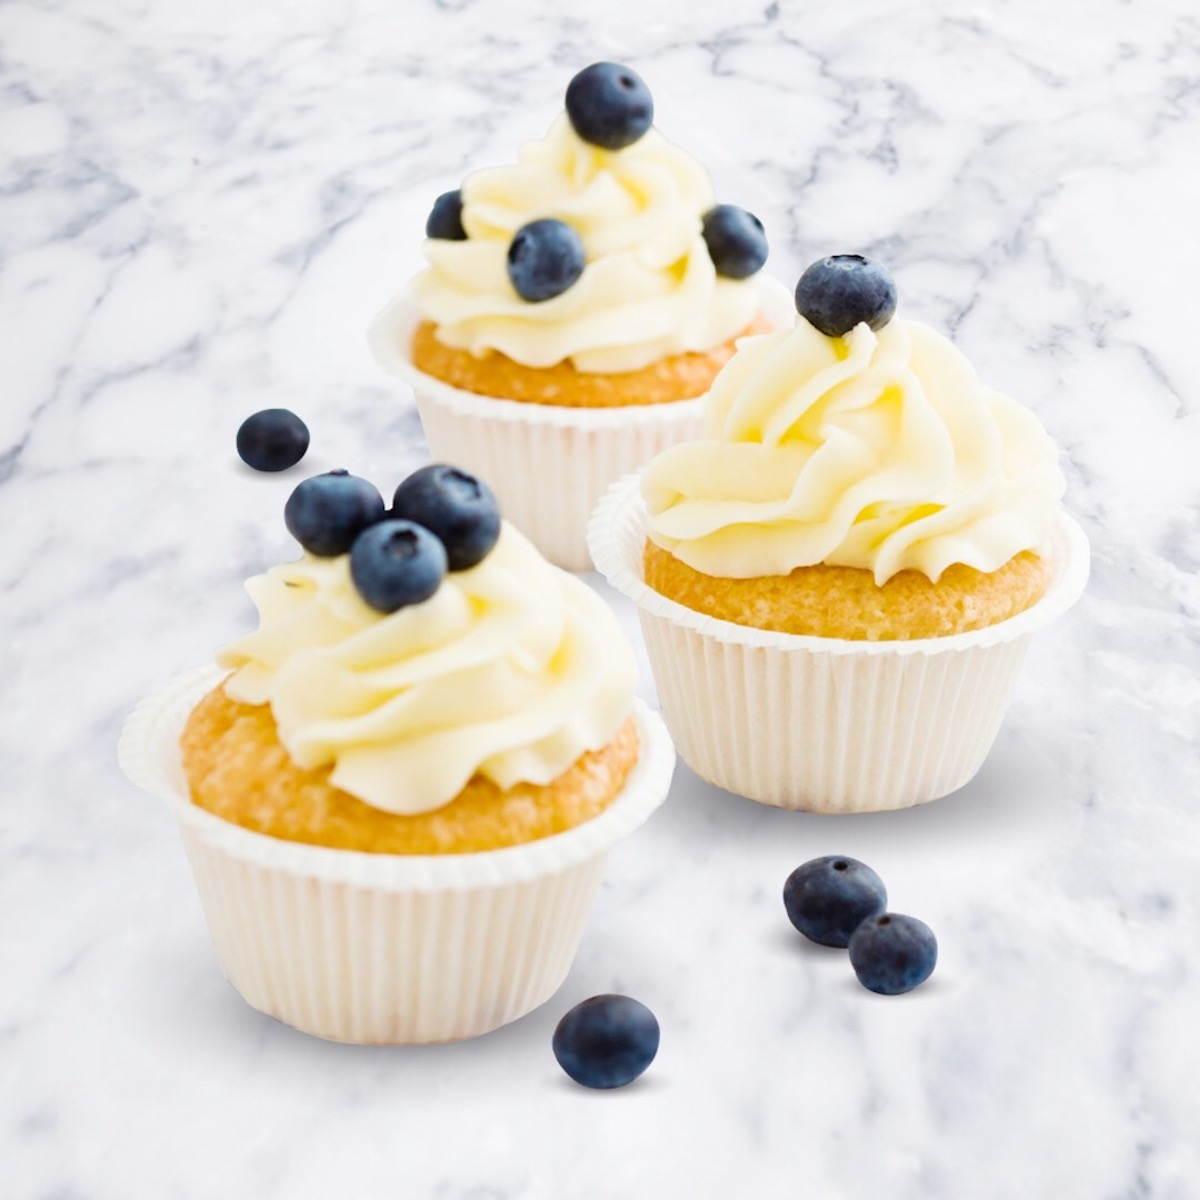 Lemon Cupcakes with a Blueberry Buttercream